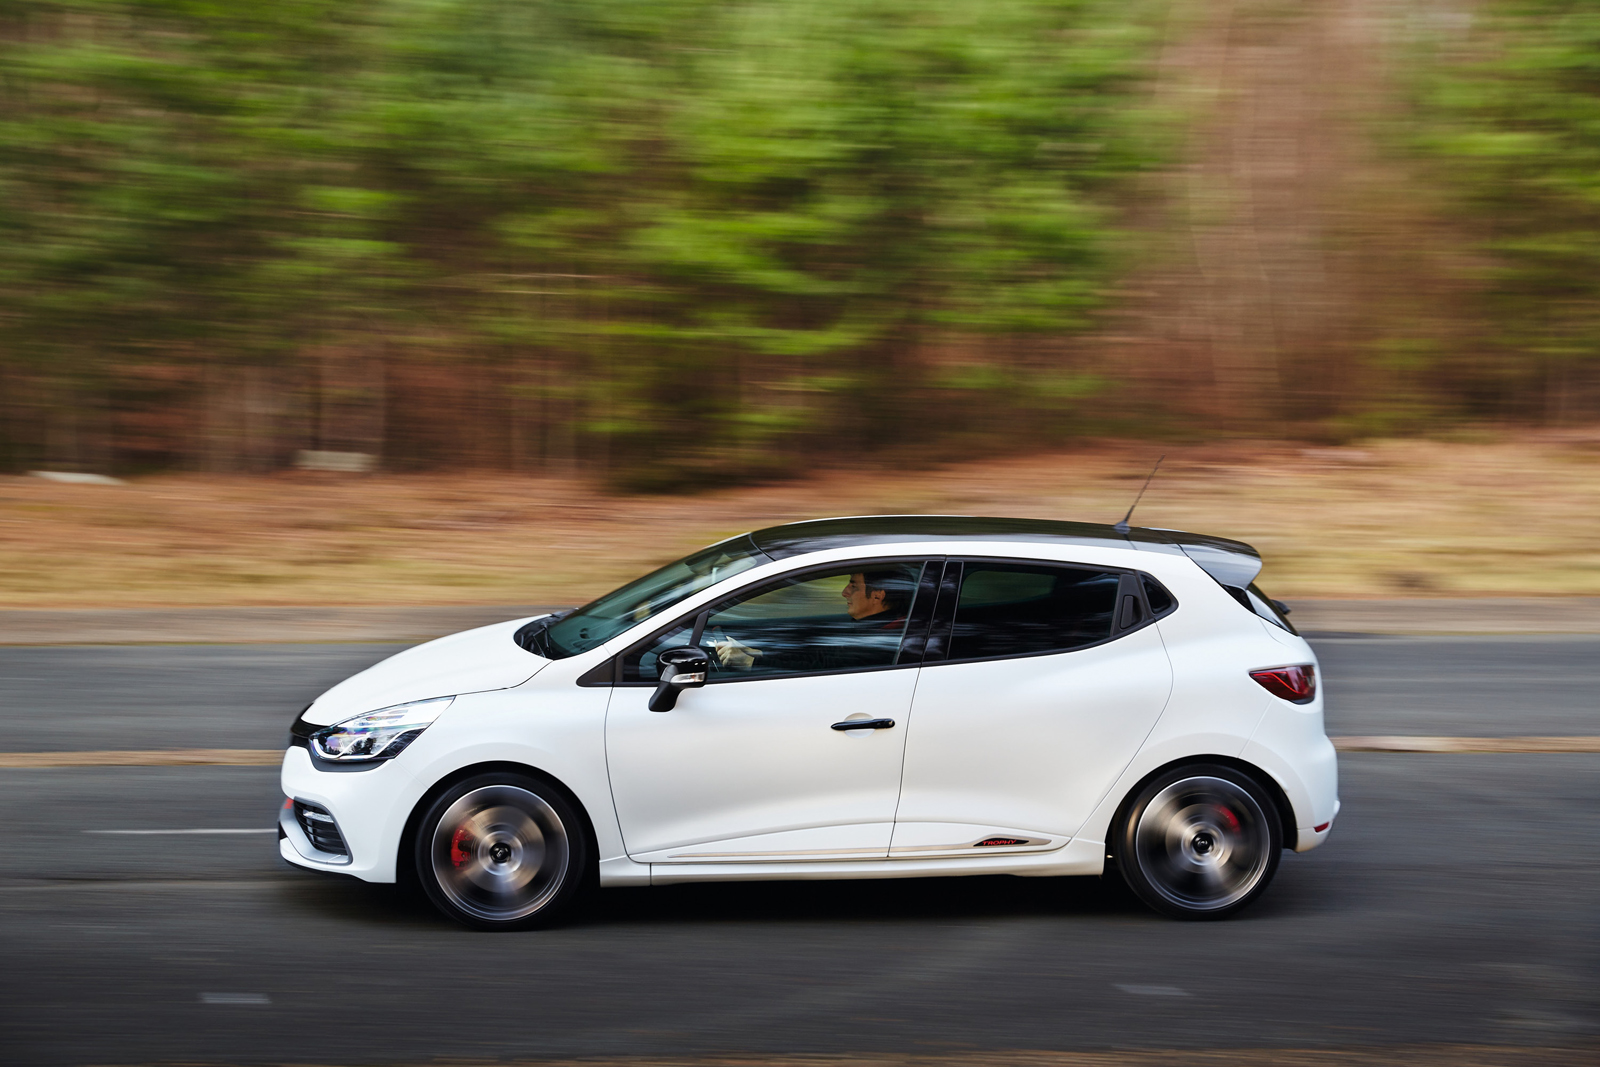 renault clio rs 220 trophy becomes fastest small hatch at the 39 ring with 8 23 lap carscoops. Black Bedroom Furniture Sets. Home Design Ideas